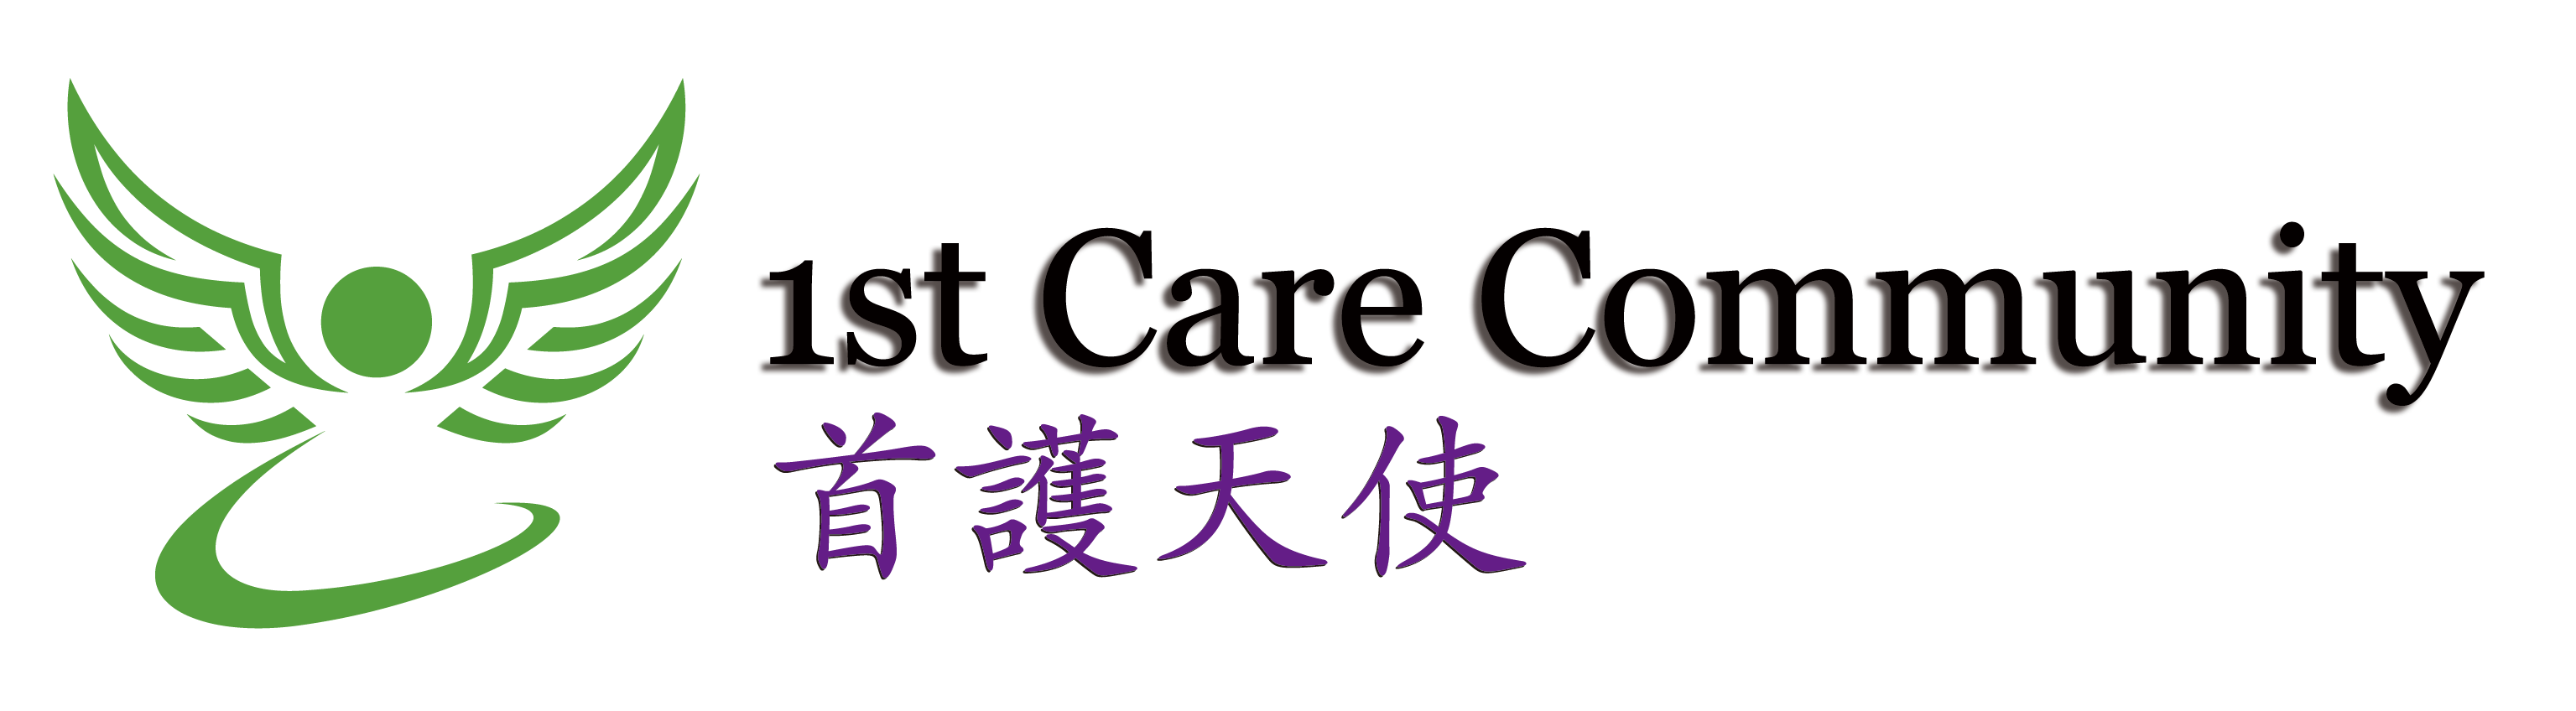 1st Care Community-首護天使